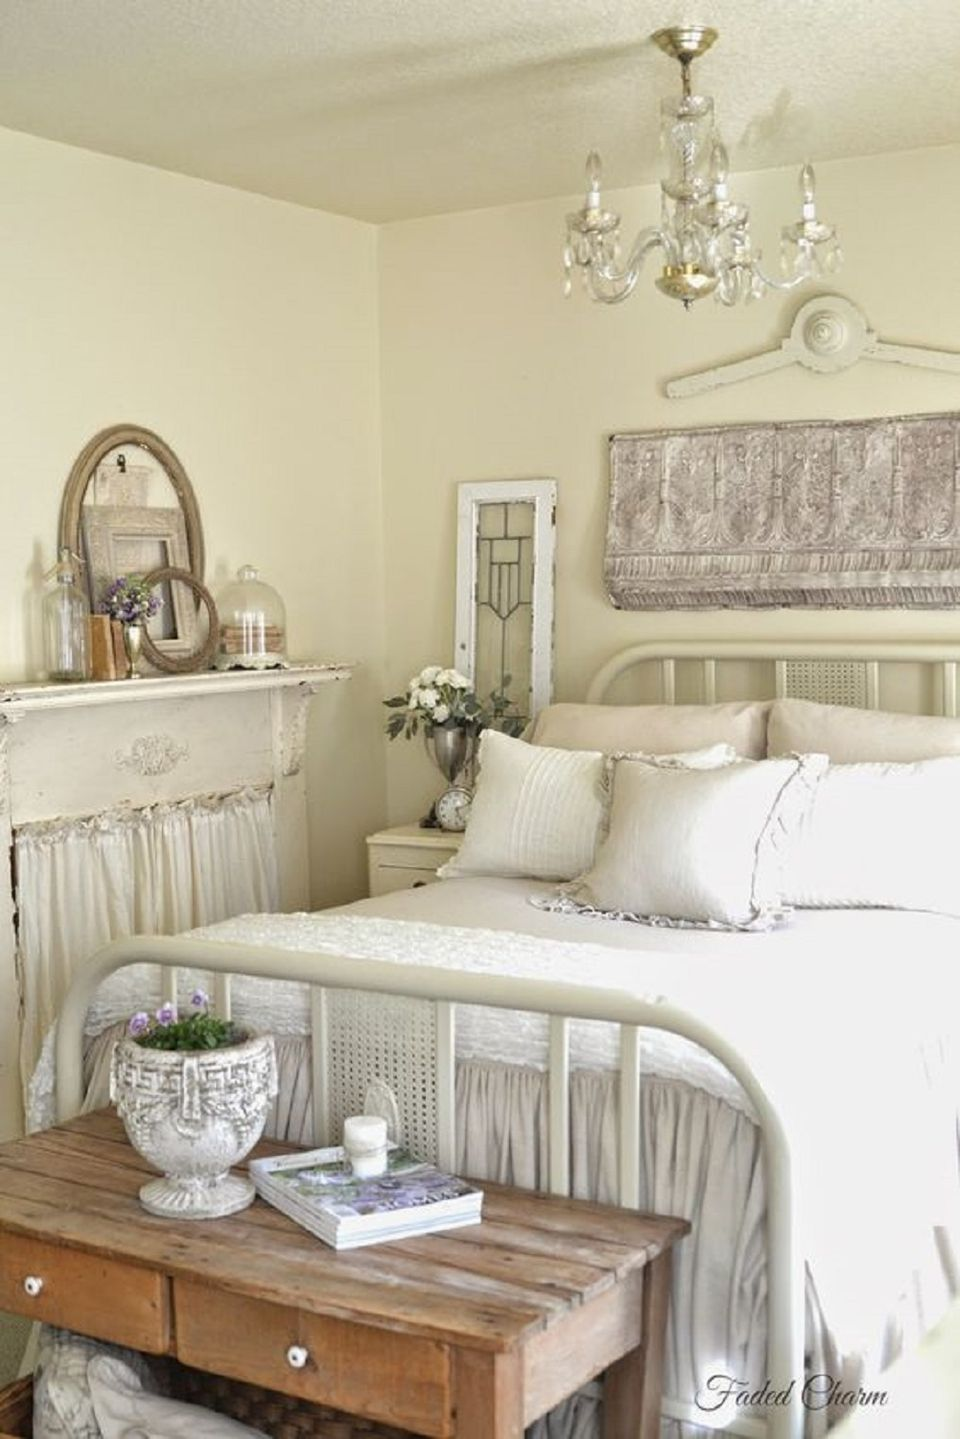 French country bedroom decorating ideas and photos for A bedroom in french